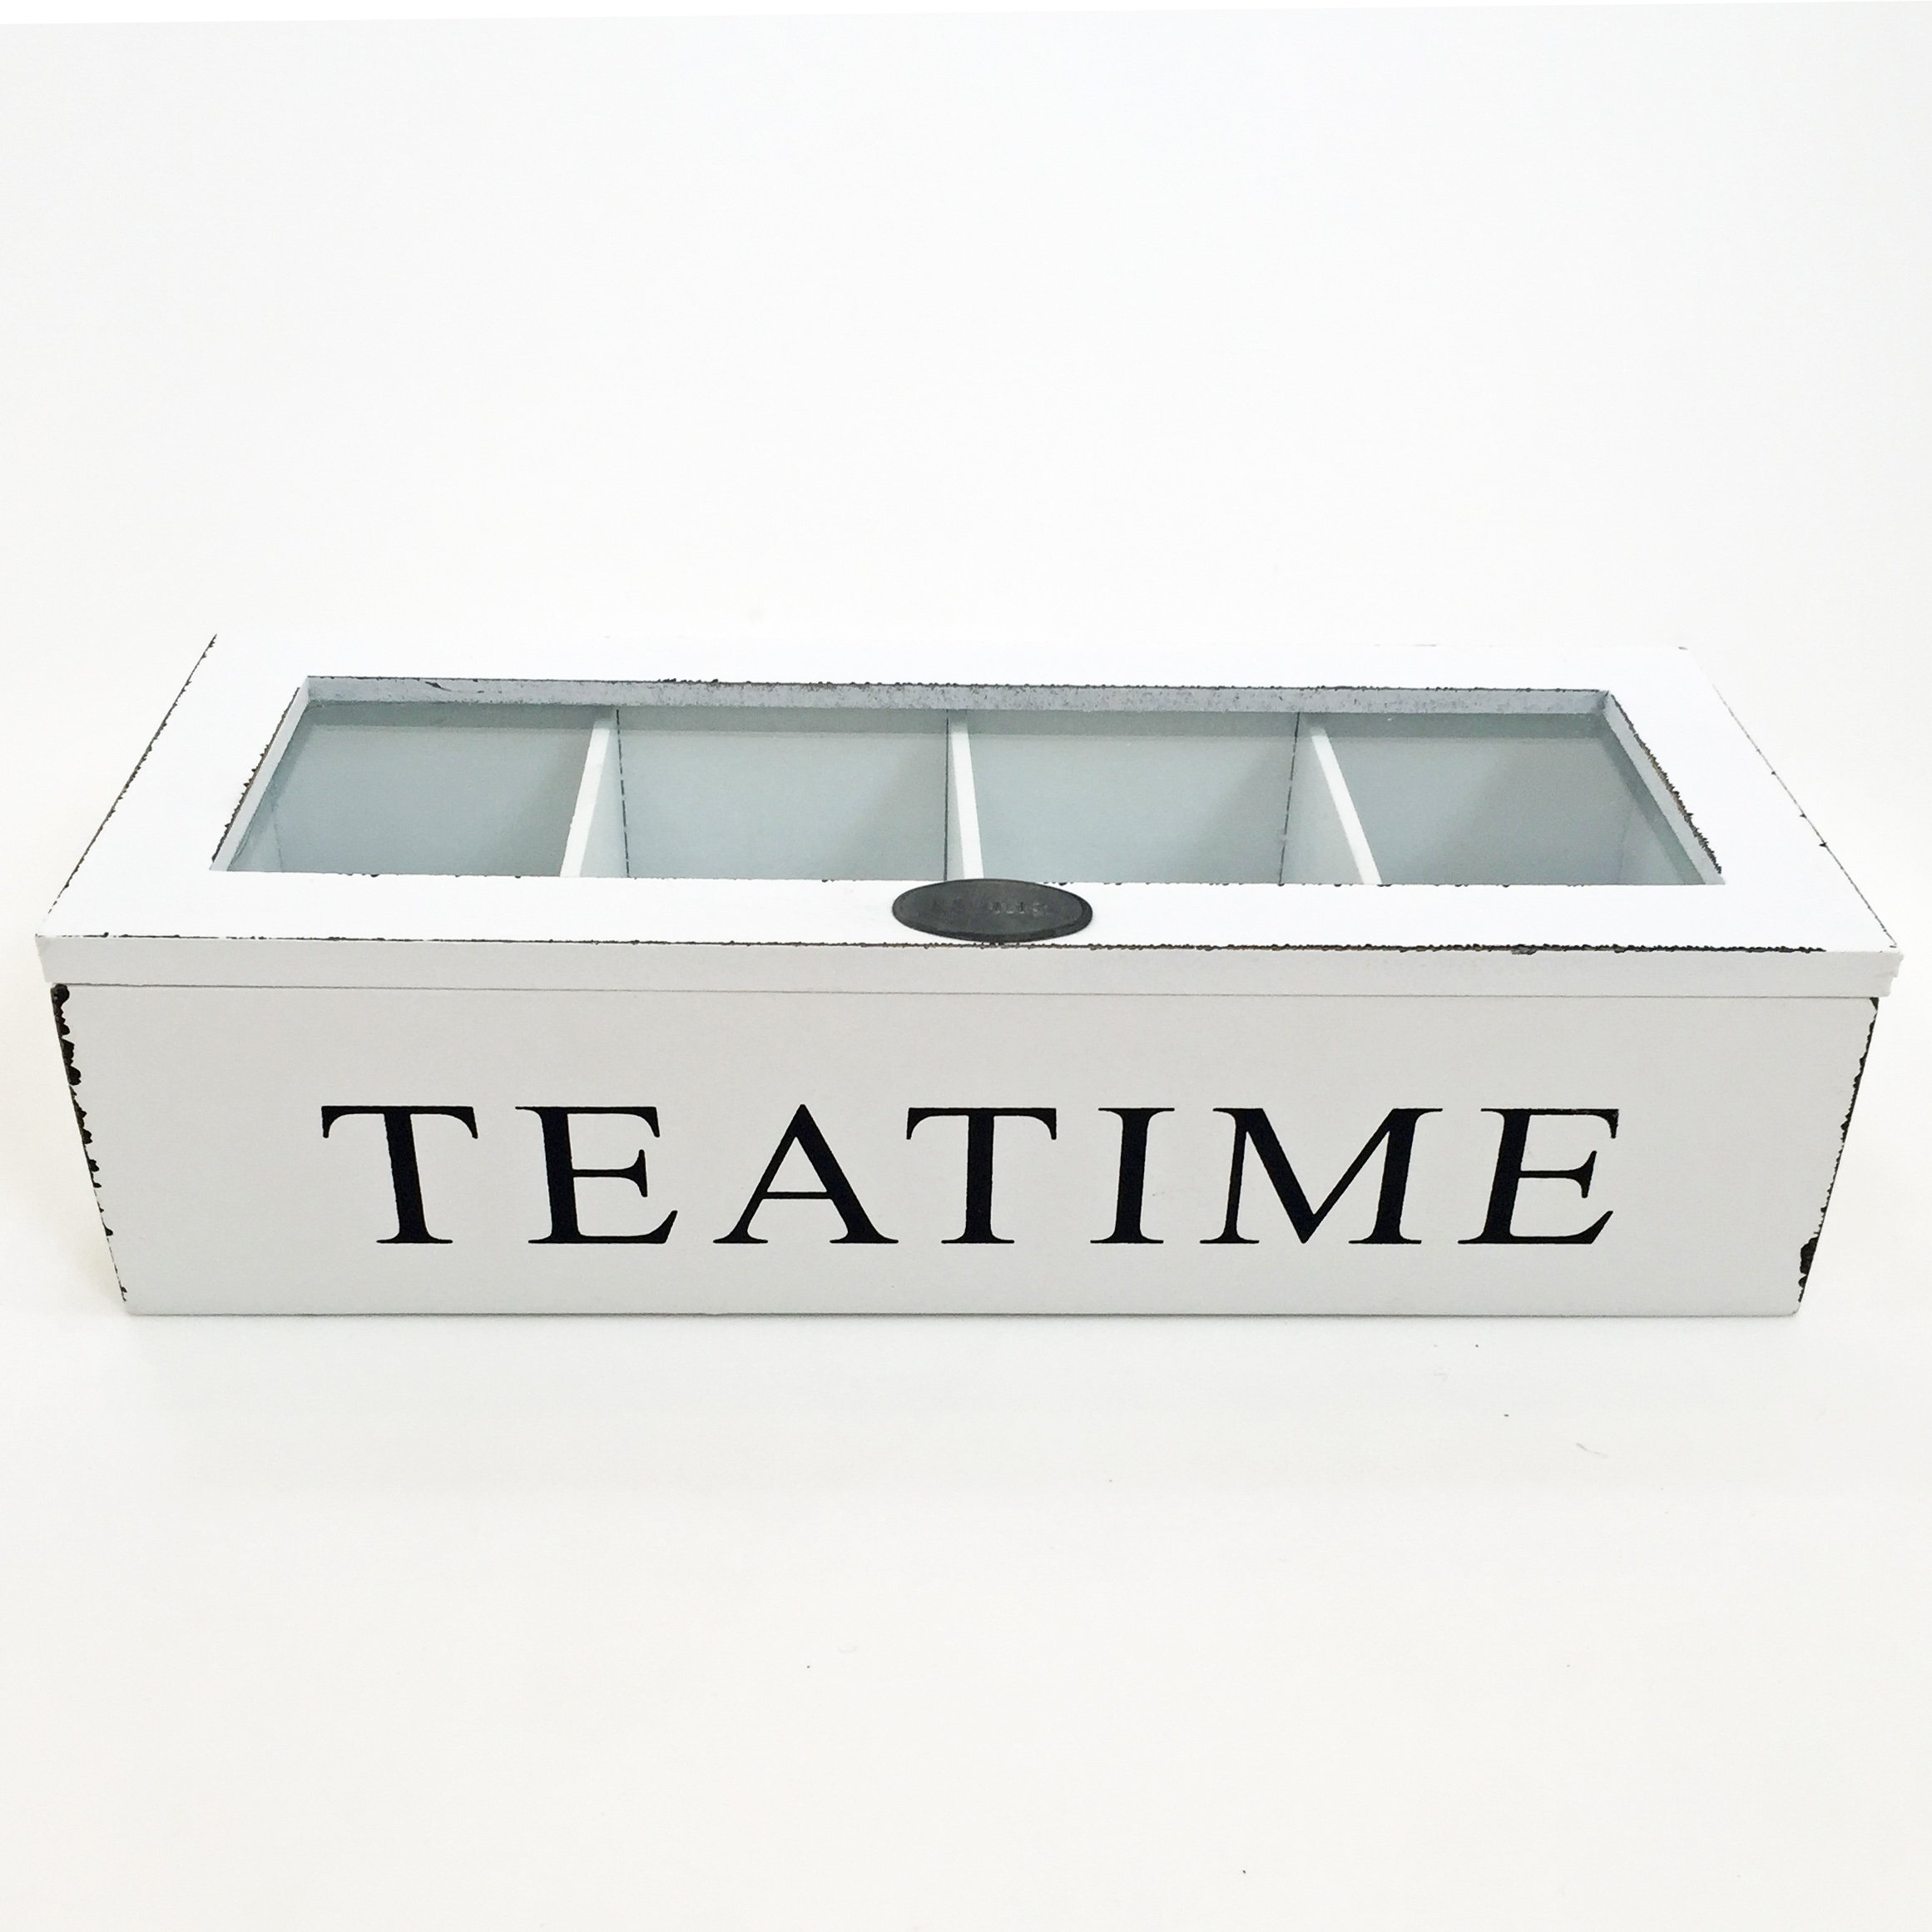 The Tea Time Chest Wood in White, approx. 10 5/8 x 4 3/8 x 2 ¾'', By Whole House Worlds